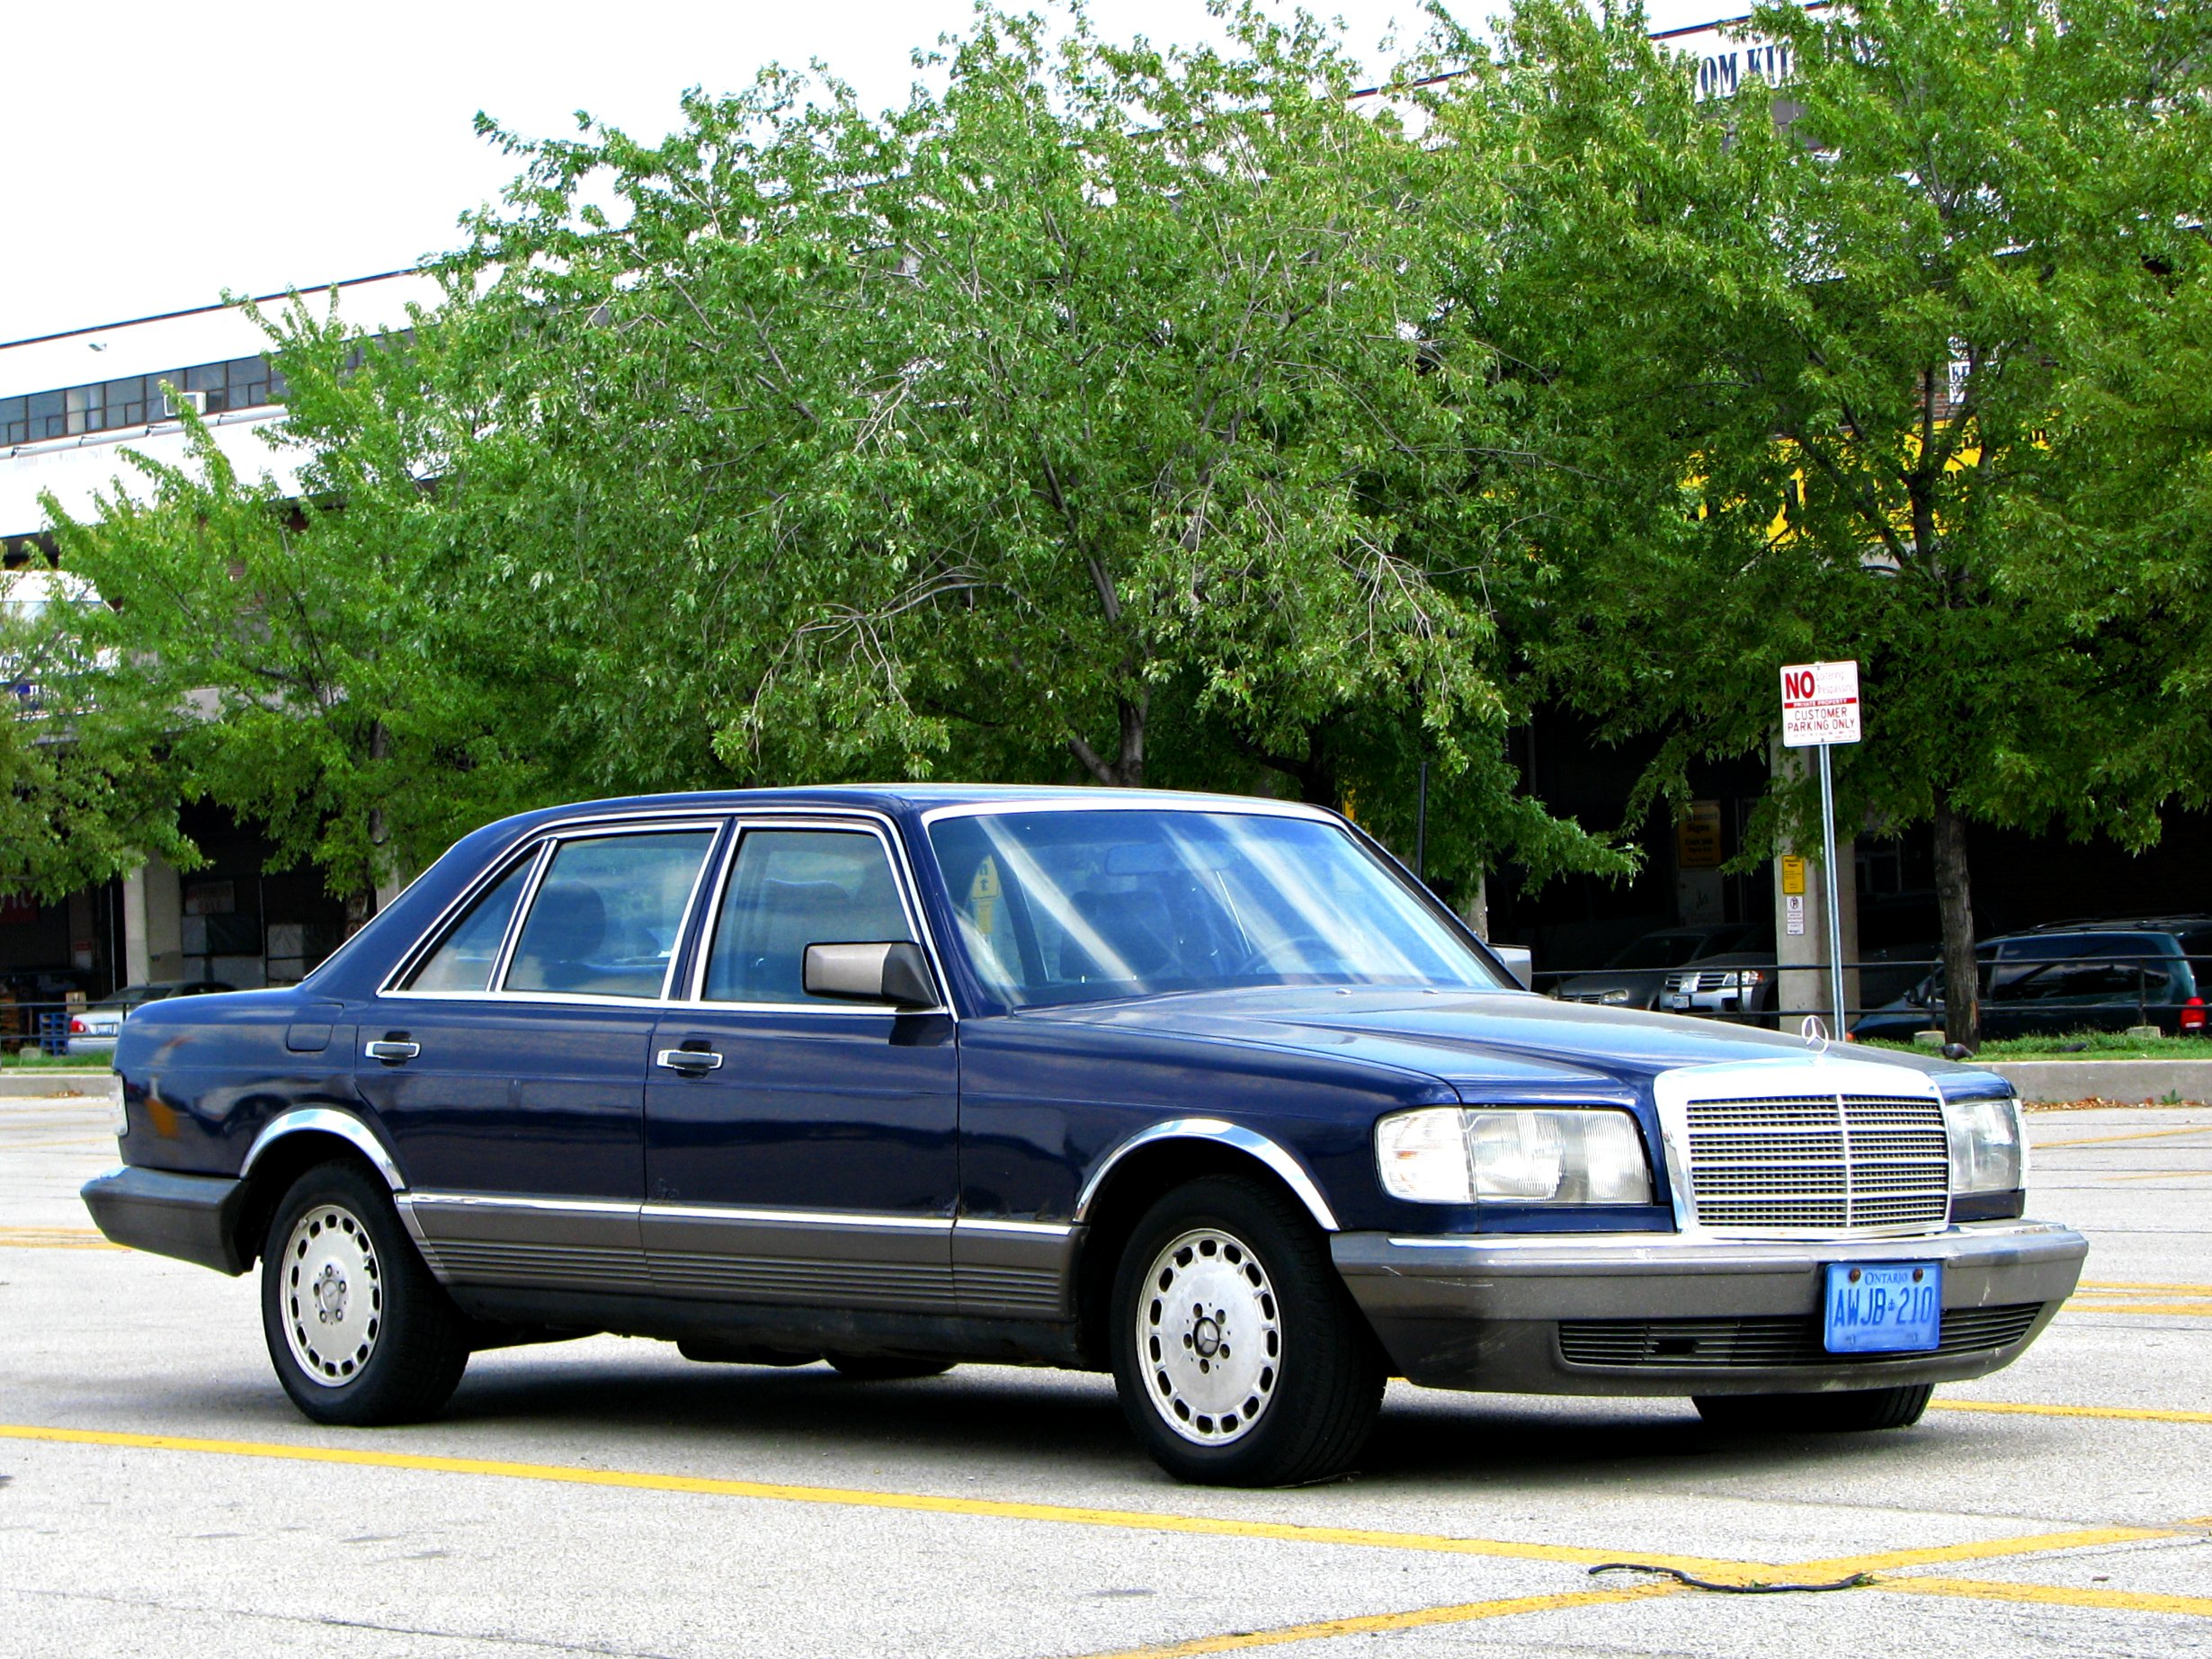 File:Mercedes 500 SEL (4949443386).jpg - Wikimedia Commons